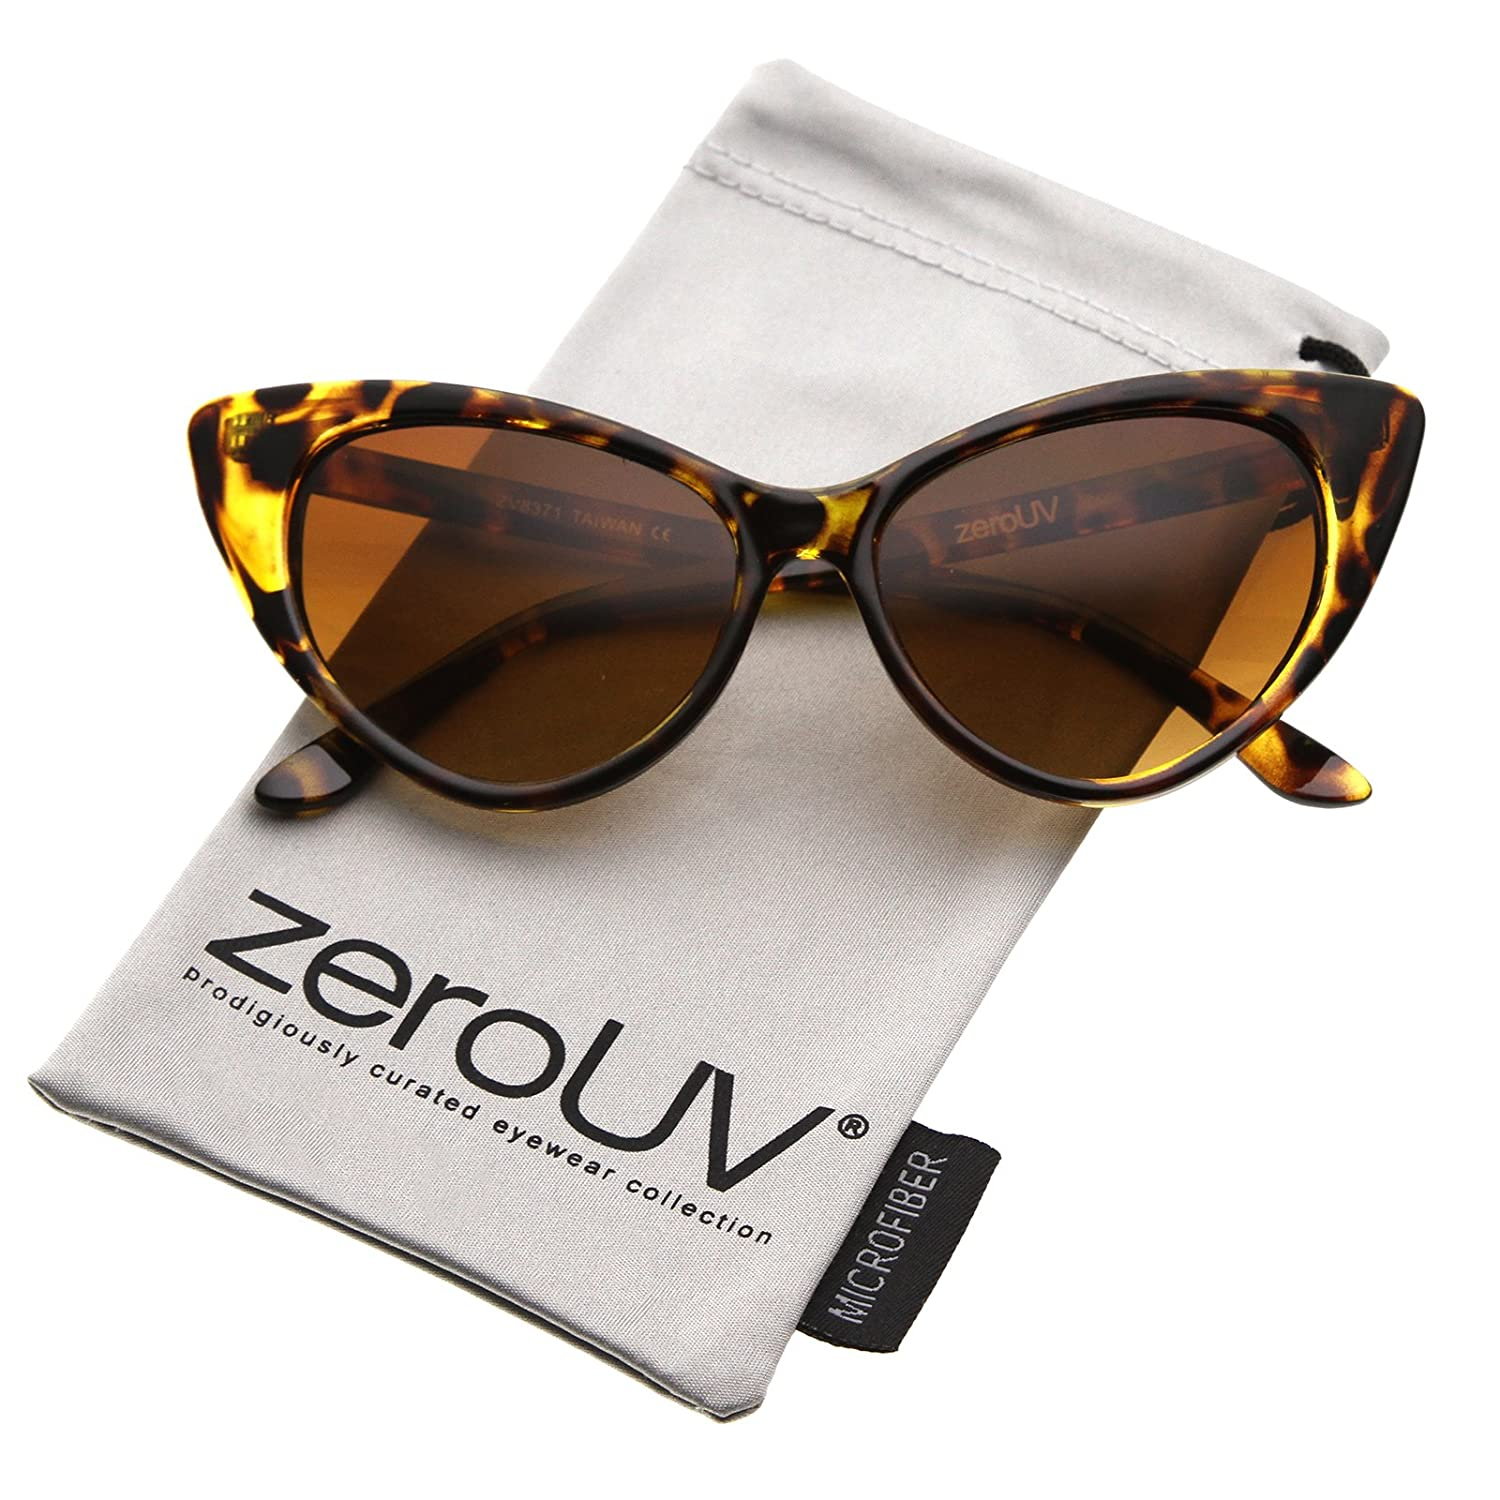 78ff0f2c9b zeroUV - Women s Retro Oversized High Point Cat Eye Sunglasses 54mm ...